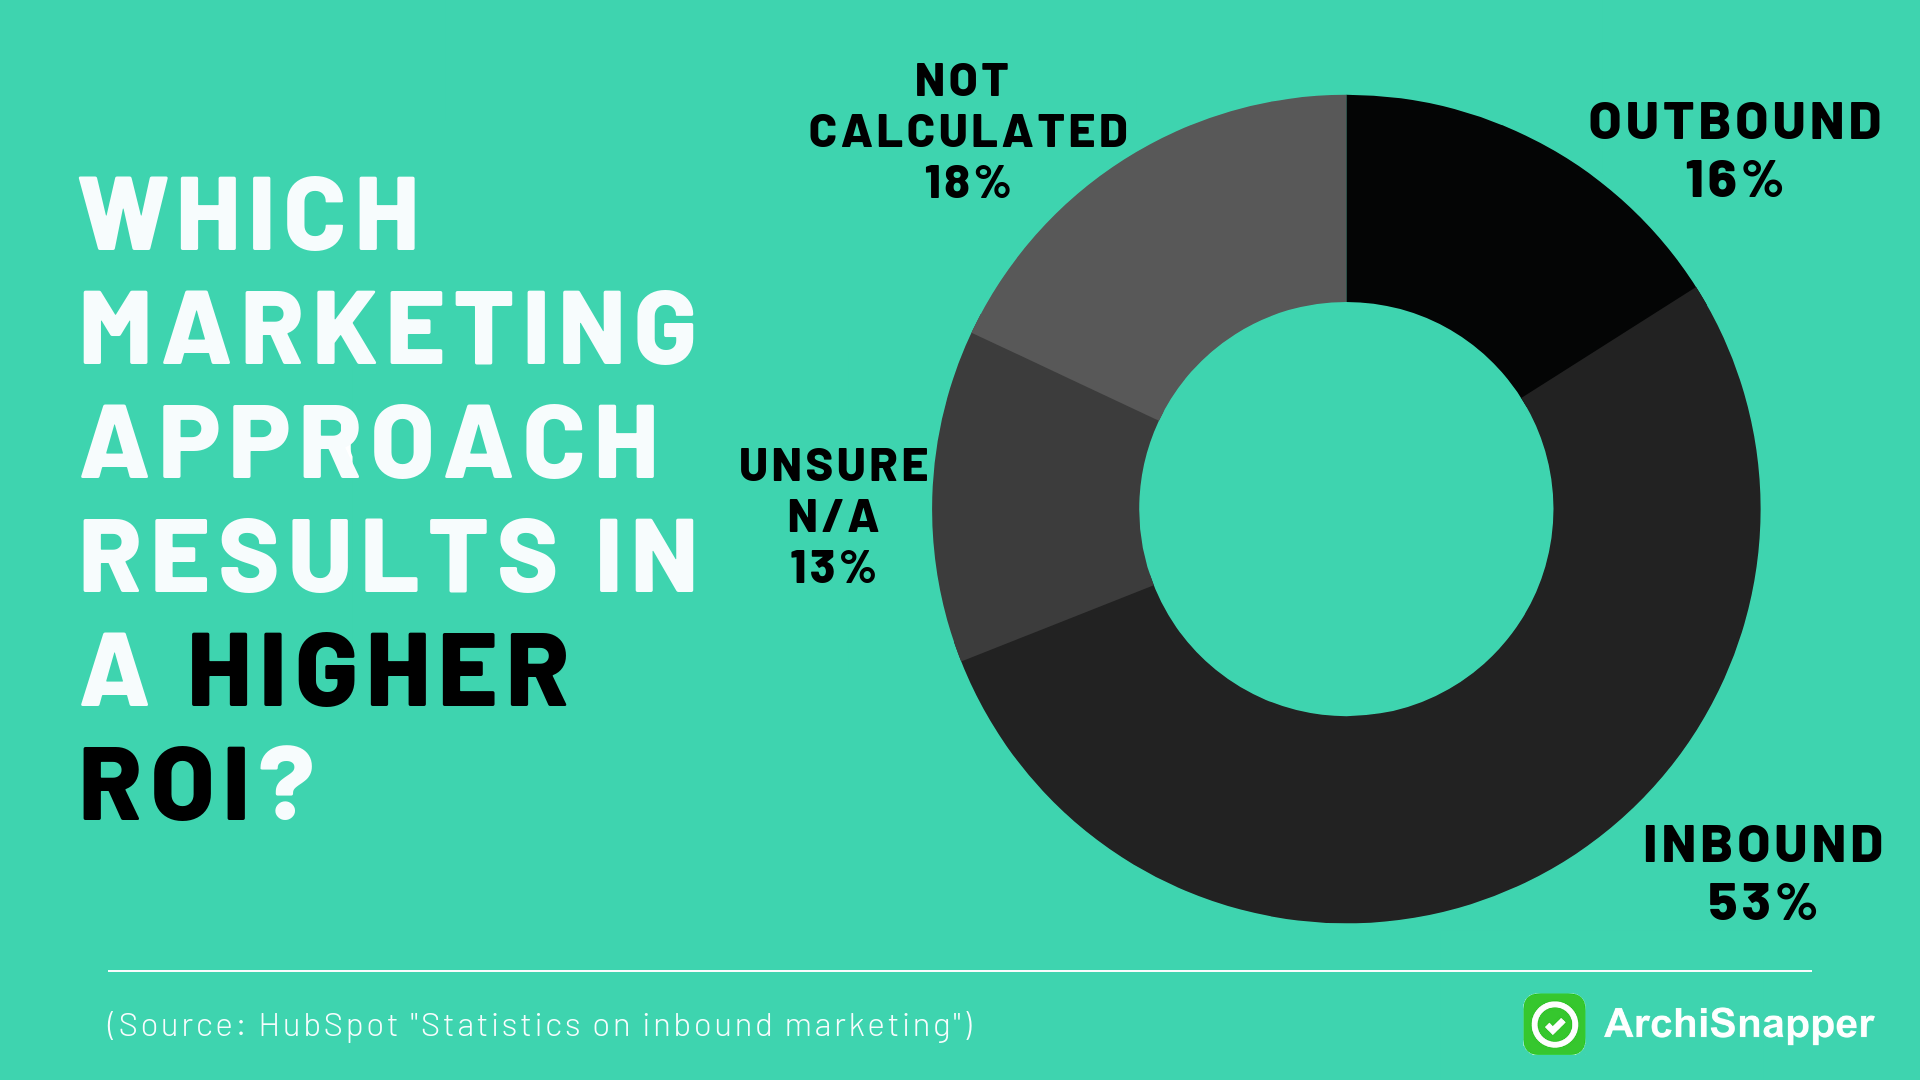 Marketing Content Marketing for Architects and Contractors | Higher ROI with inbound marketing